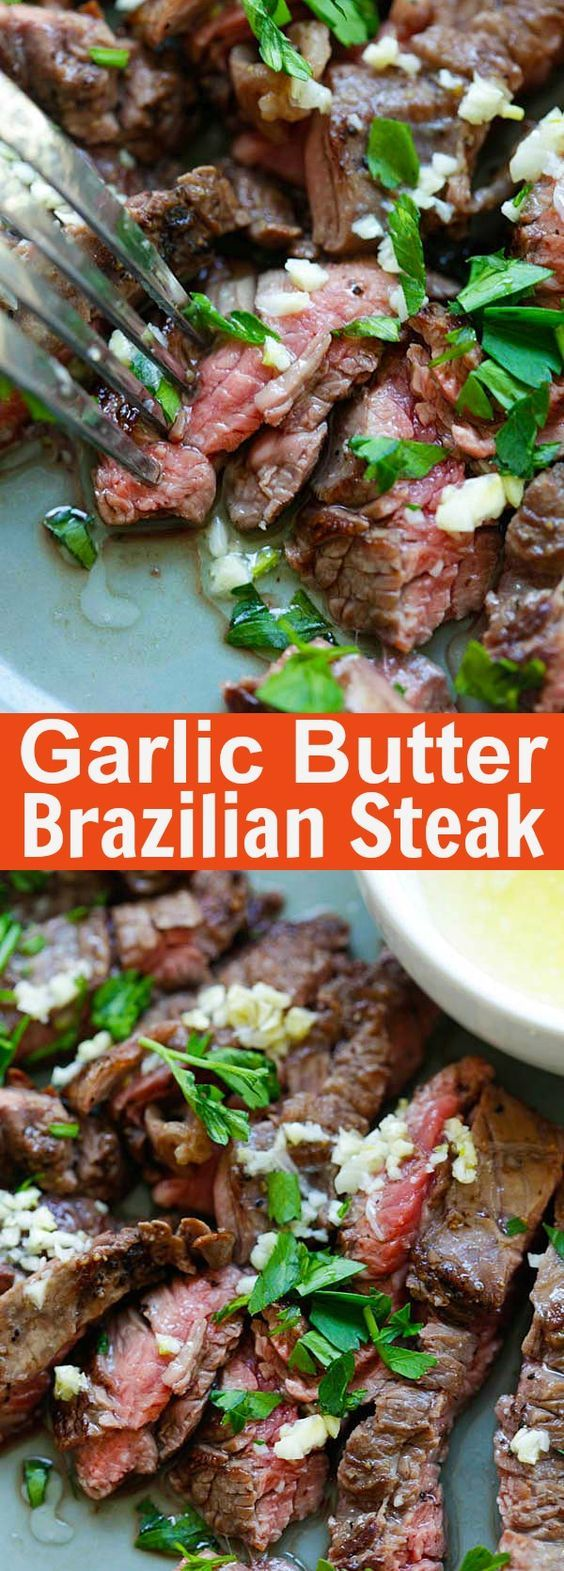 Garlic Butter Brazilian Steak – the juiciest and most tender steak with a golden garlic butter sauce. Takes 15 minutes and